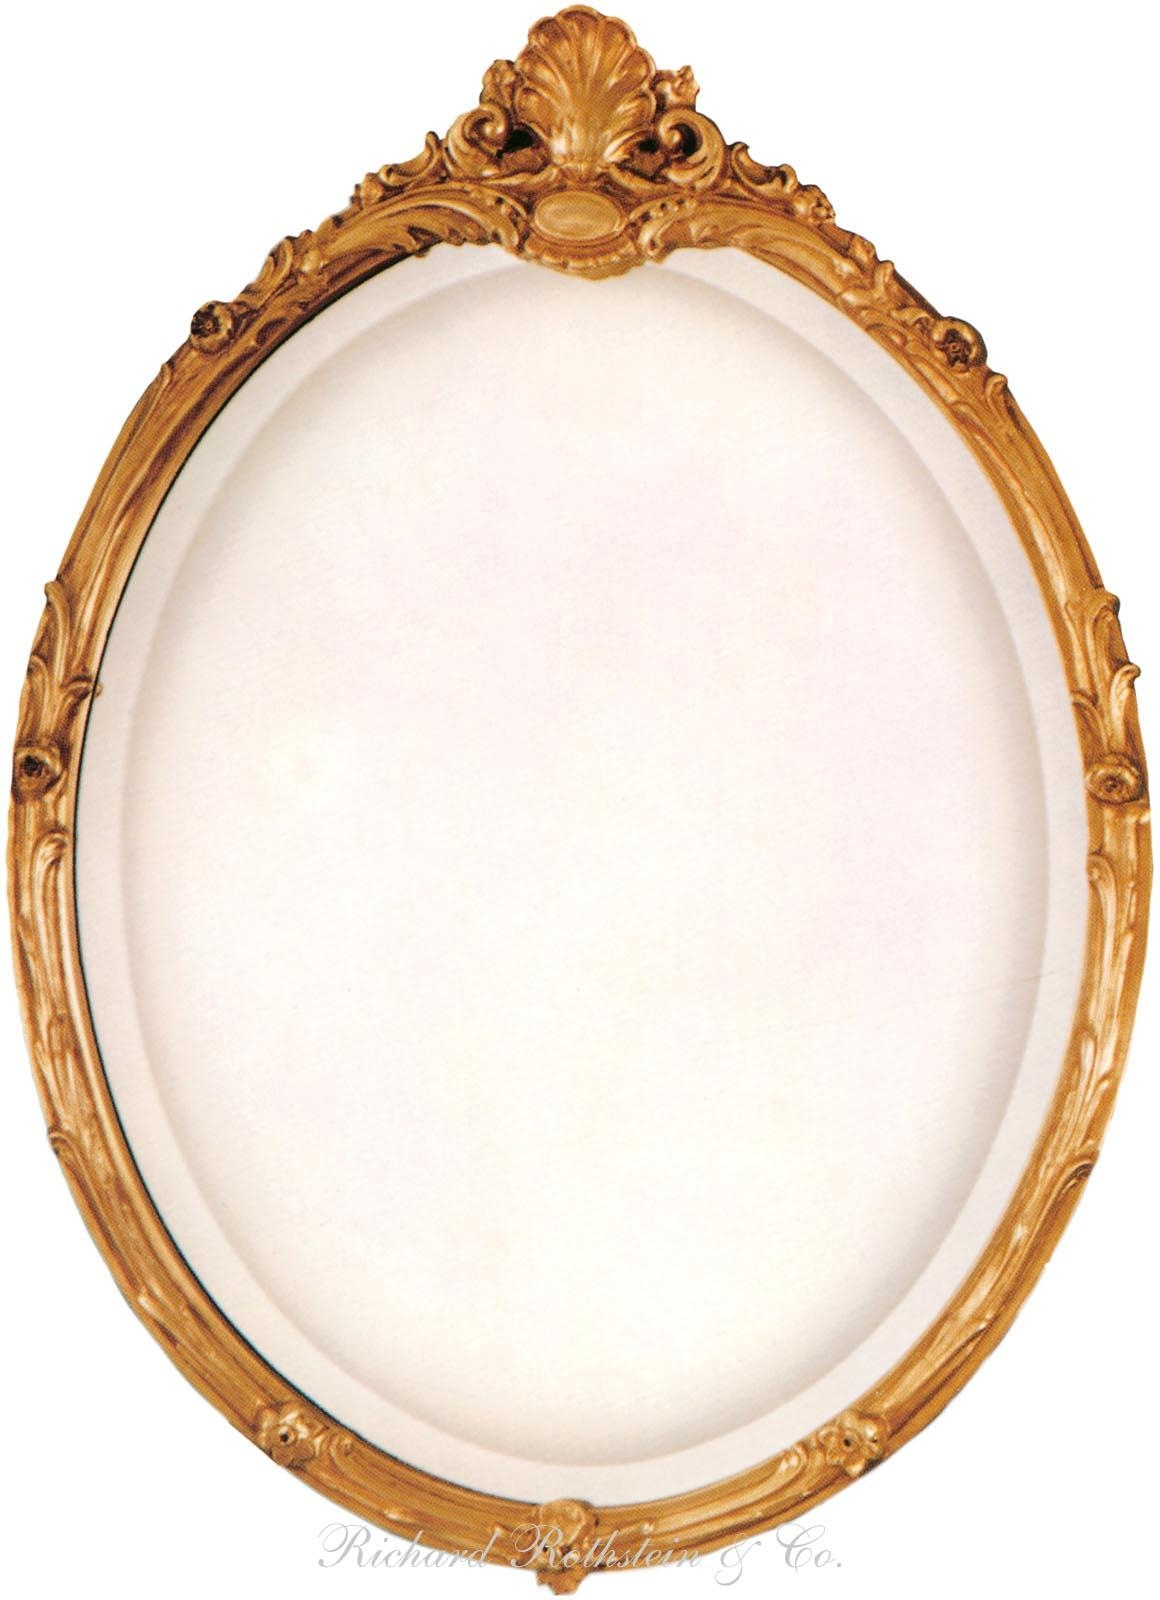 Decorative Oval Mirror | Whomestudio | Magazine Online Home Within Gold Oval Mirrors (Image 6 of 20)